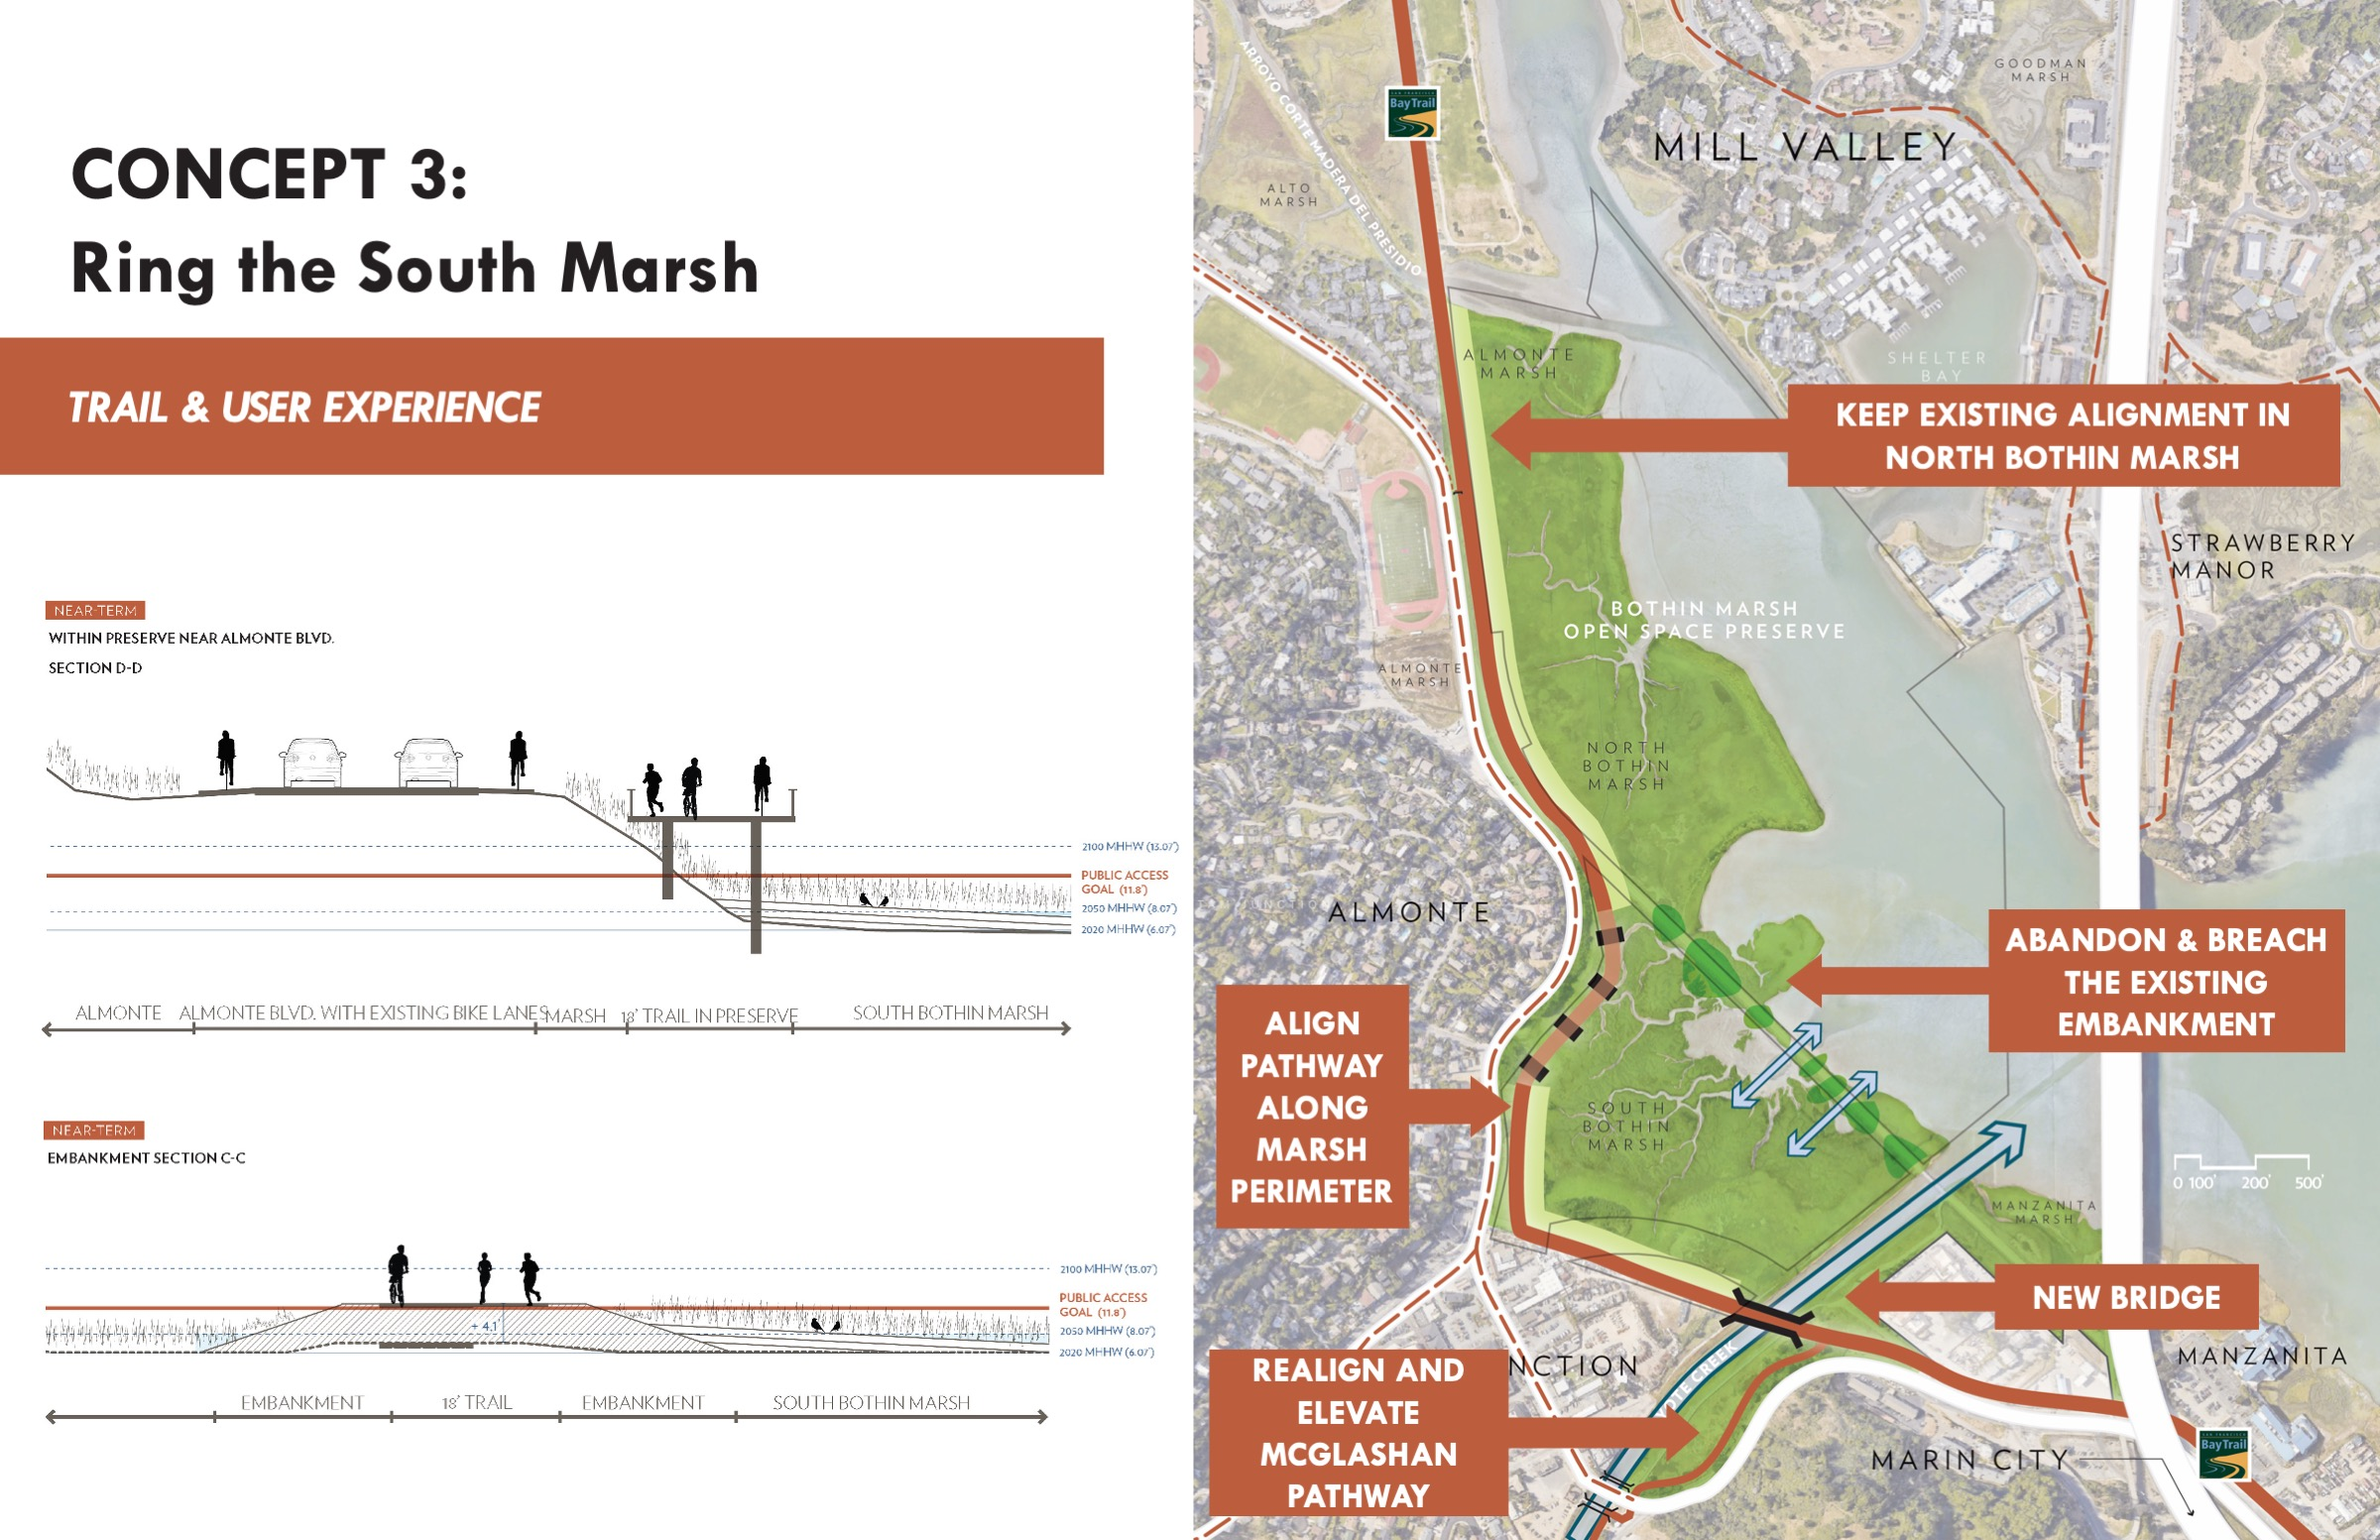 Concept 3 re-aligns large segments of thepathwaysout of the marsh toexisting high-ground and allows for full hydraulic and ecological connections between the creek, marsh, and bay. This trail alignment provides more connectivity to Tam Junction but also increases the length of the pathway and offers a different experience of the marsh. Some drawbacks of this approach are the potential impacts to the existing upland and transition zone habitats of South Bothin Marsh.